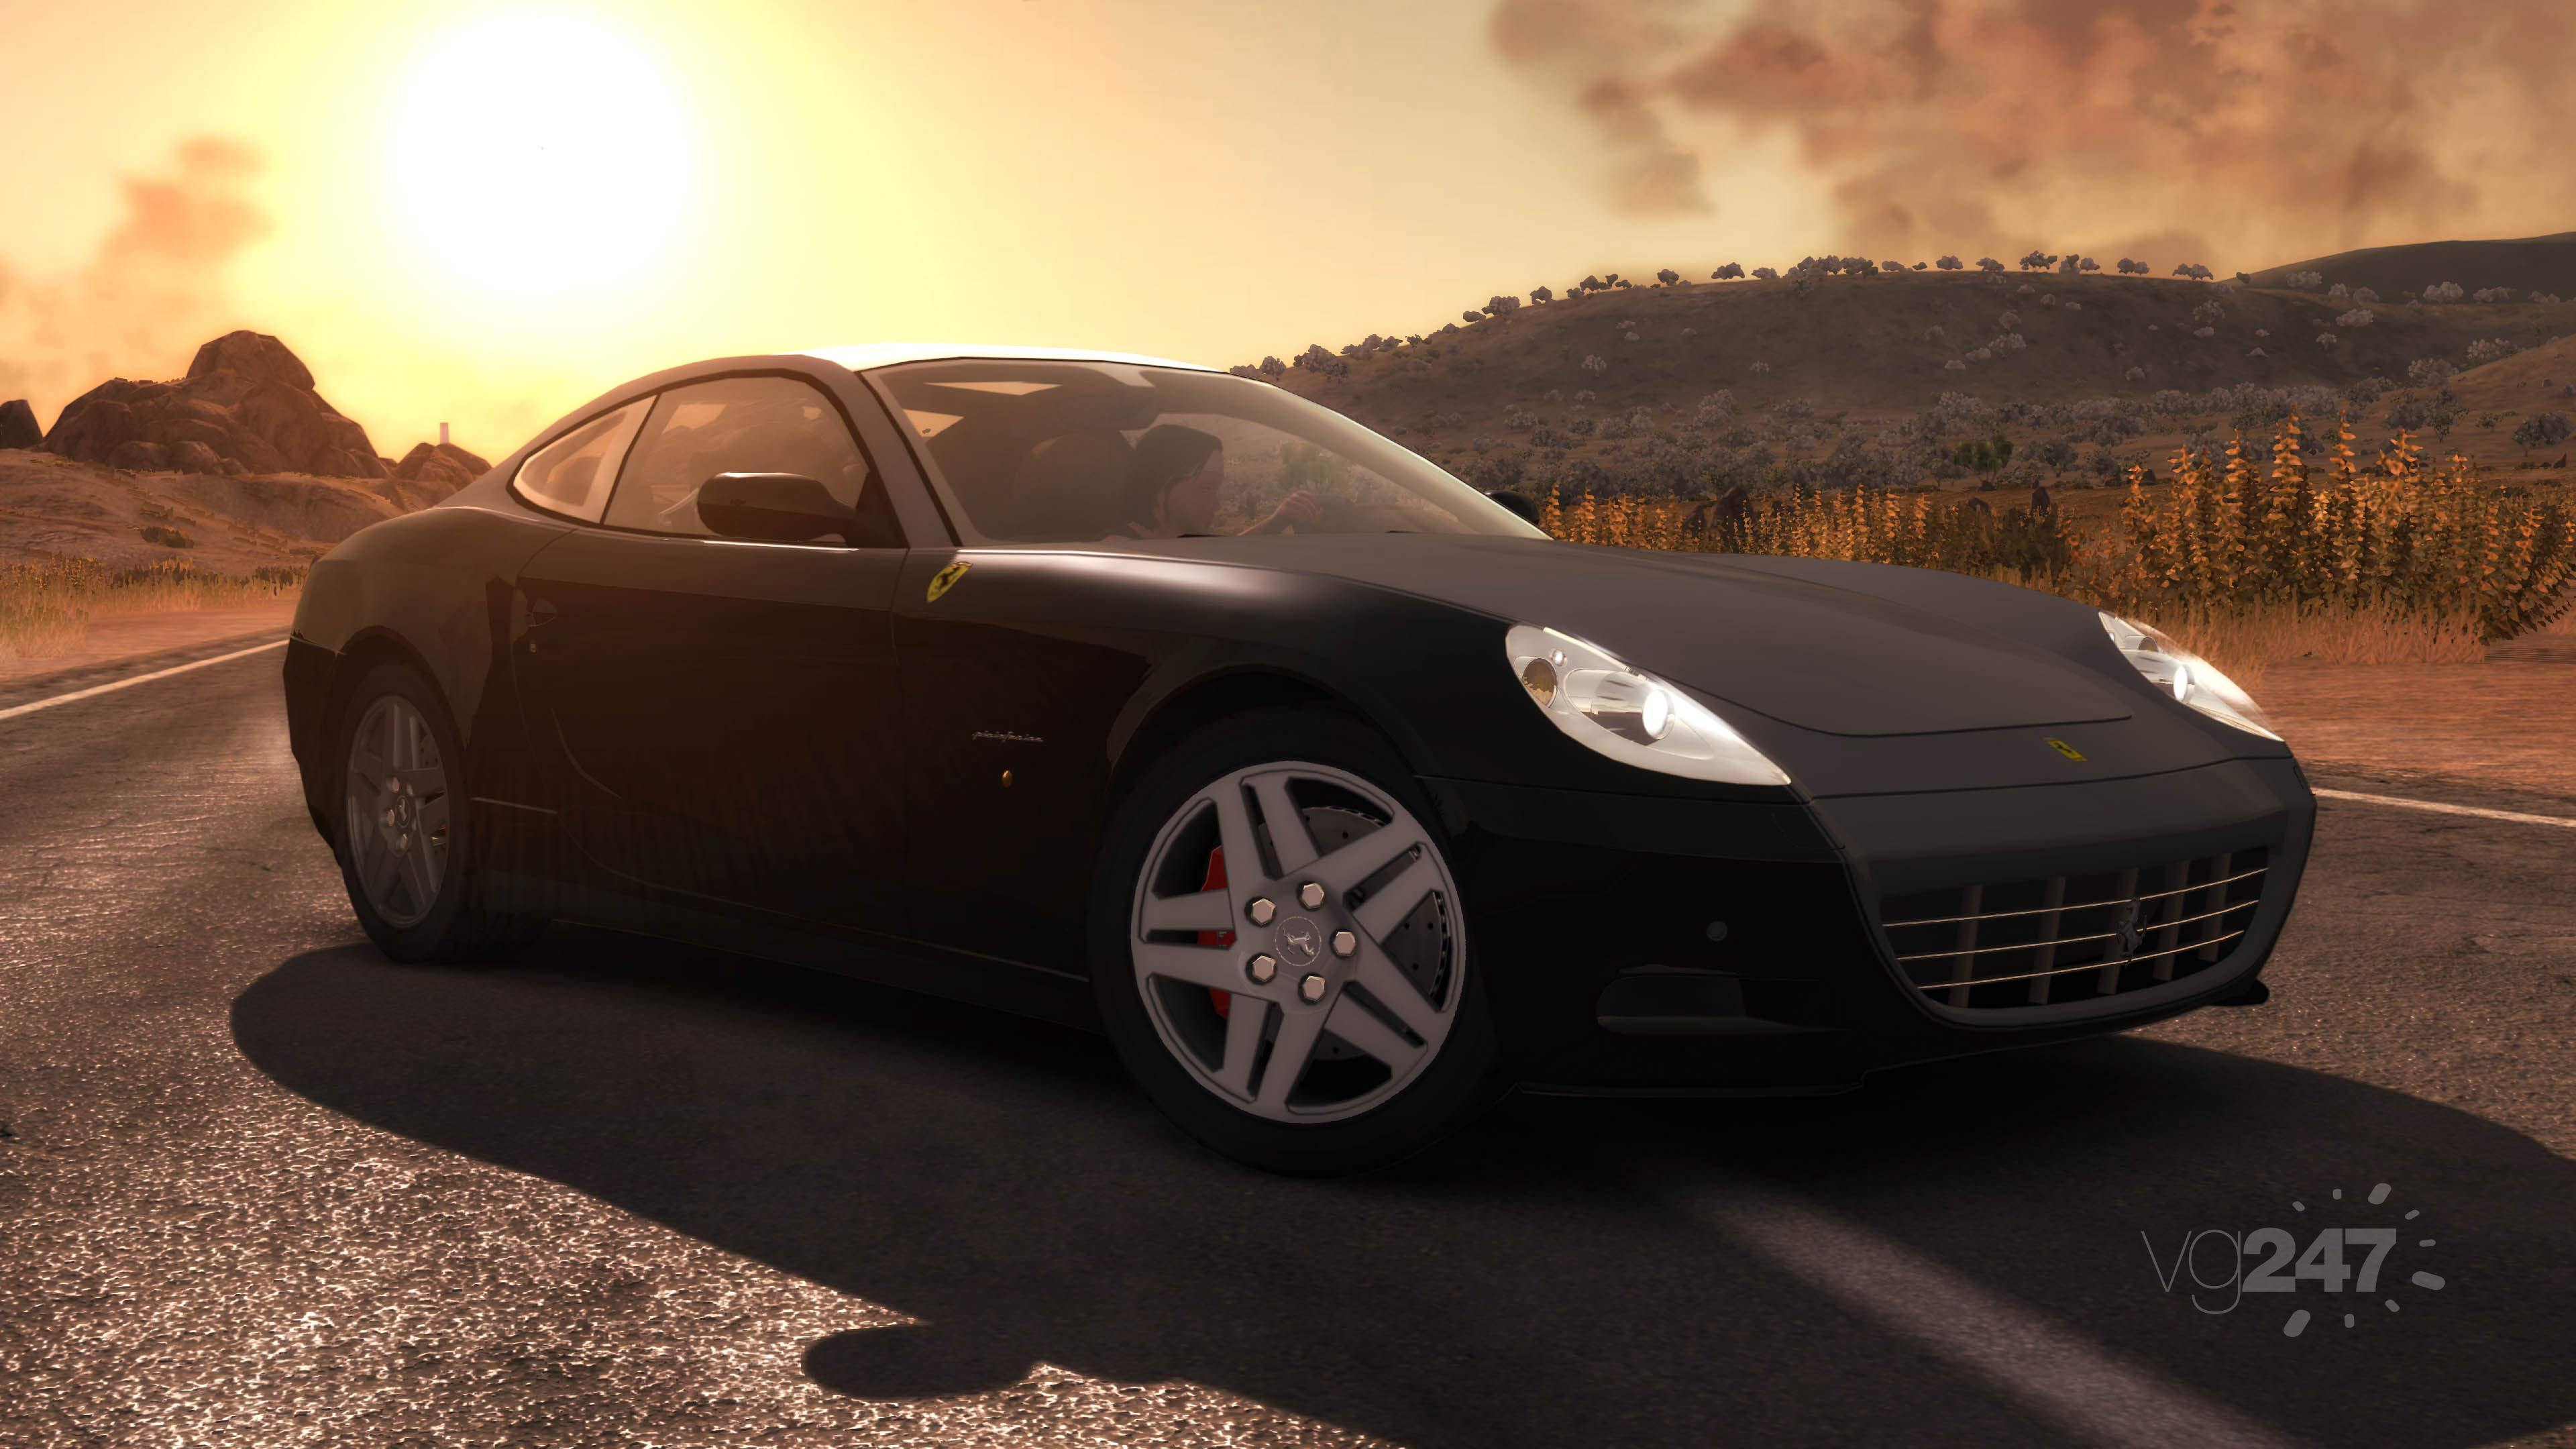 Test Drive Unlimited 2 Dated For February 11 In Europe Vg247